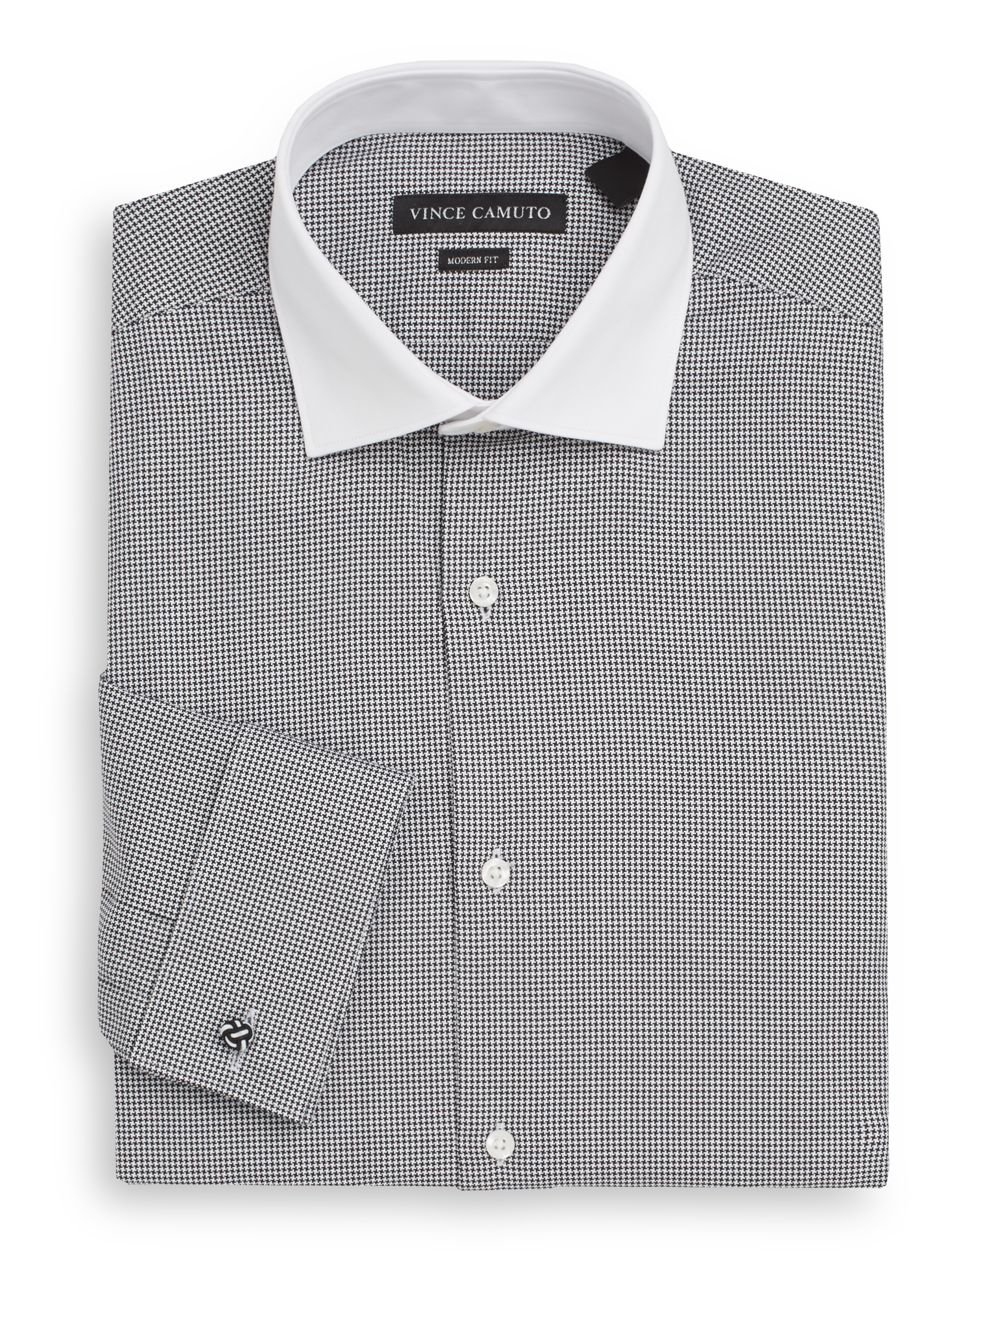 Vince camuto modern fit houndstooth cotton dress shirt in for Modern fit dress shirt